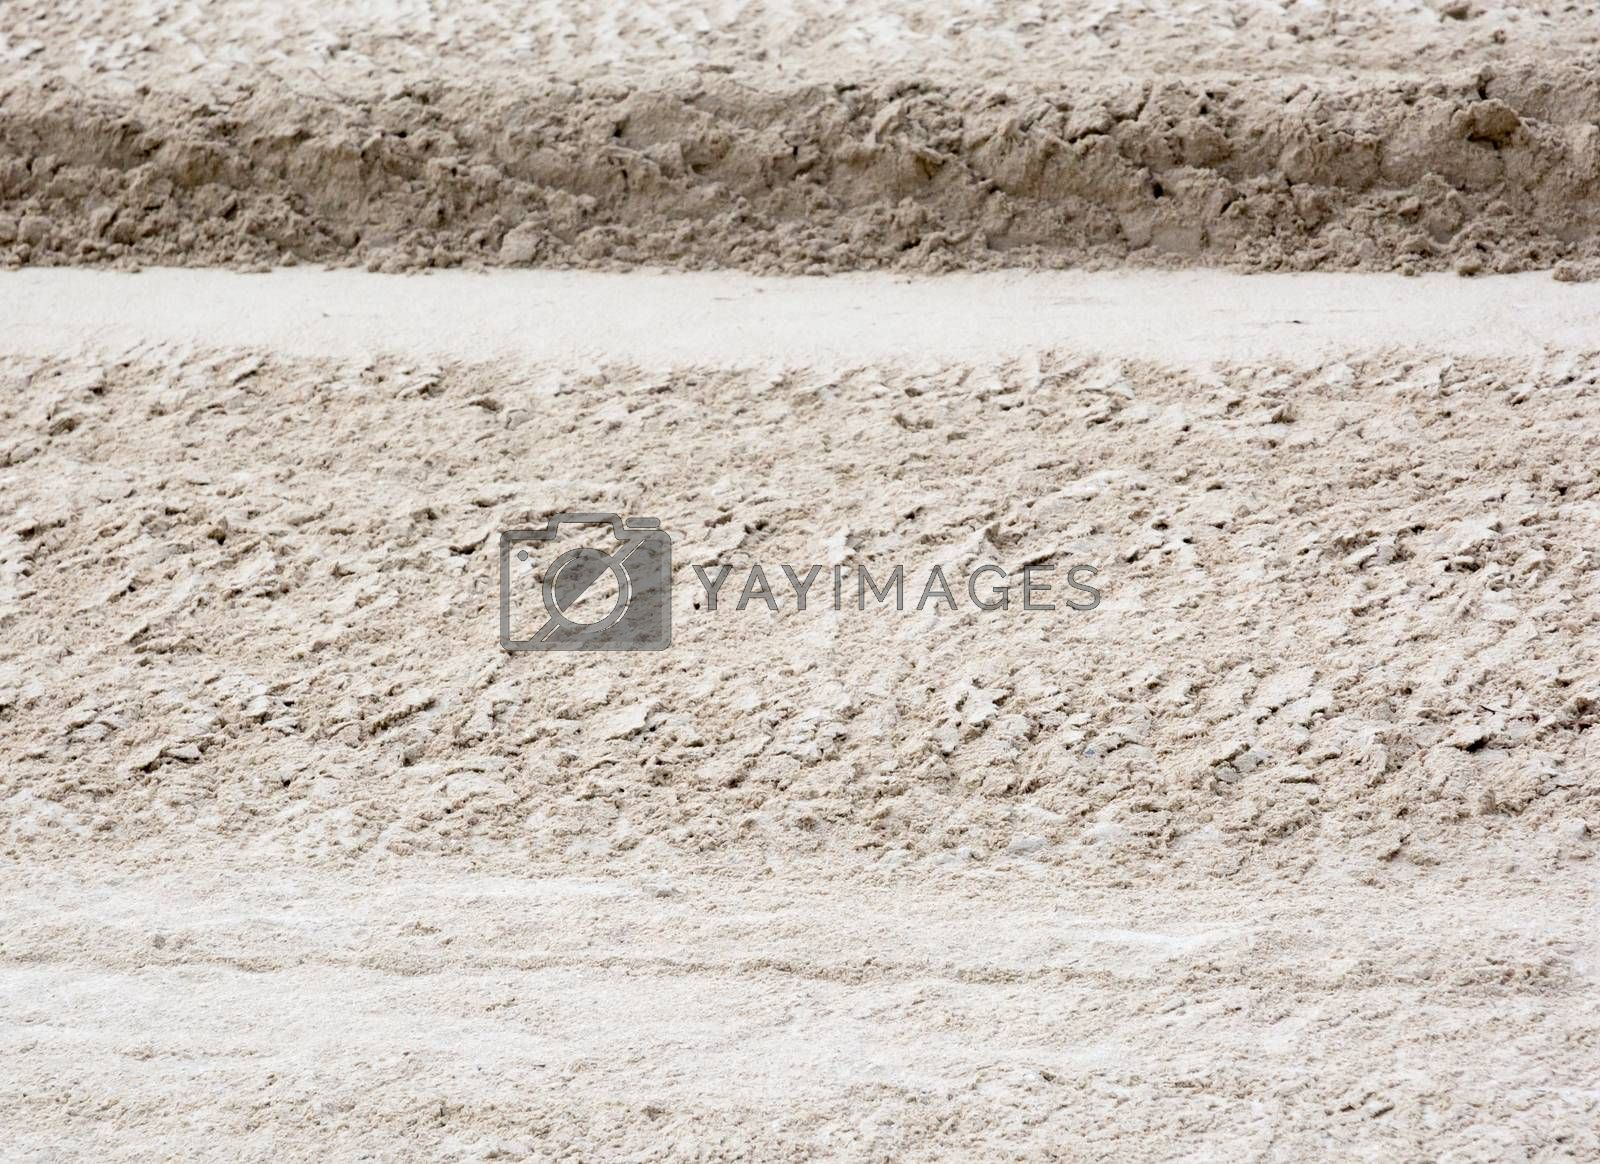 Royalty free image of Sand texture background by ArtesiaWells